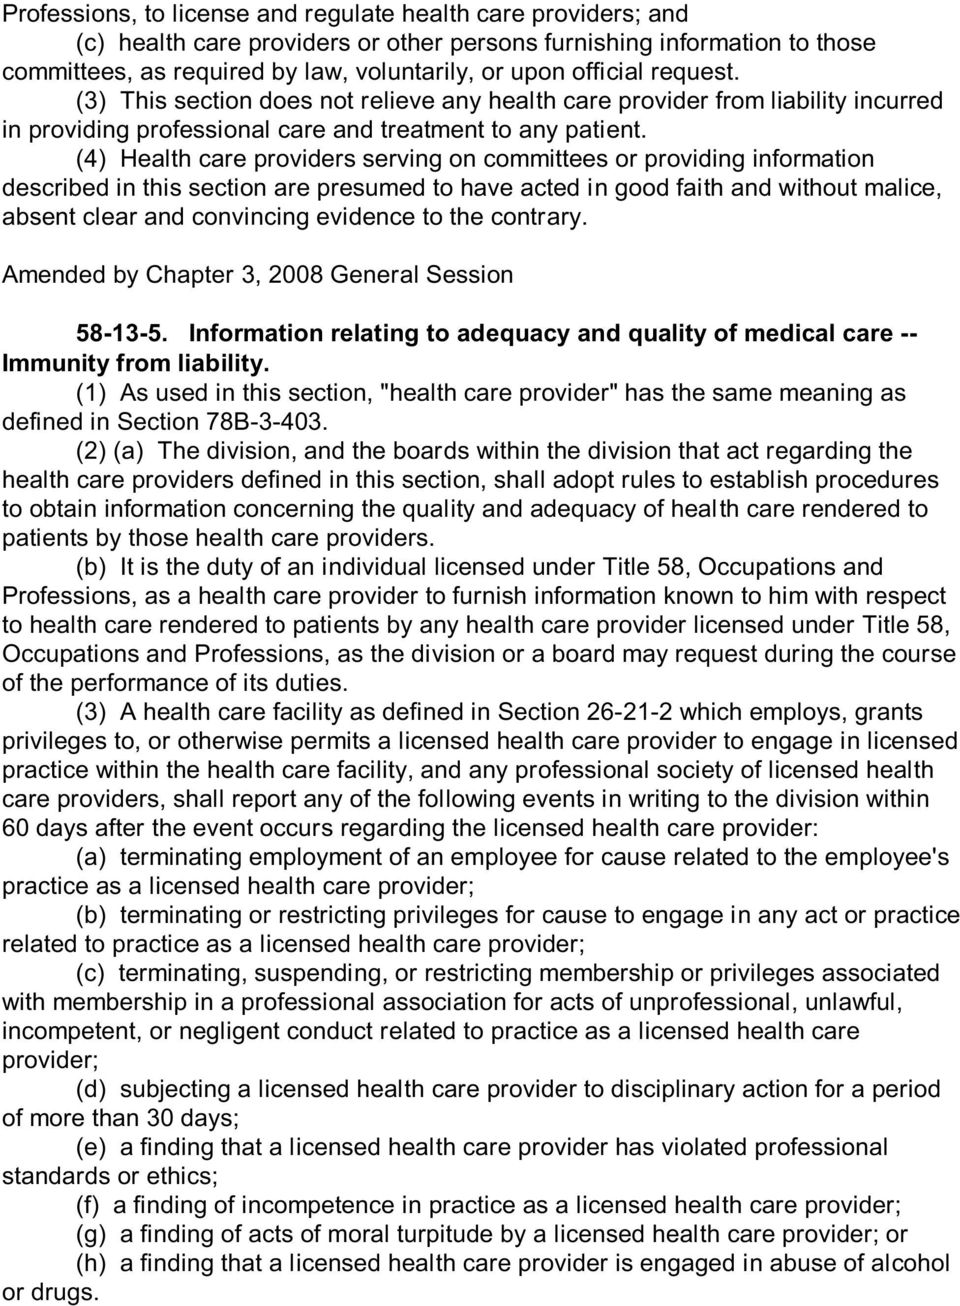 (4) Health care providers serving on committees or providing information described in this section are presumed to have acted in good faith and without malice, absent clear and convincing evidence to